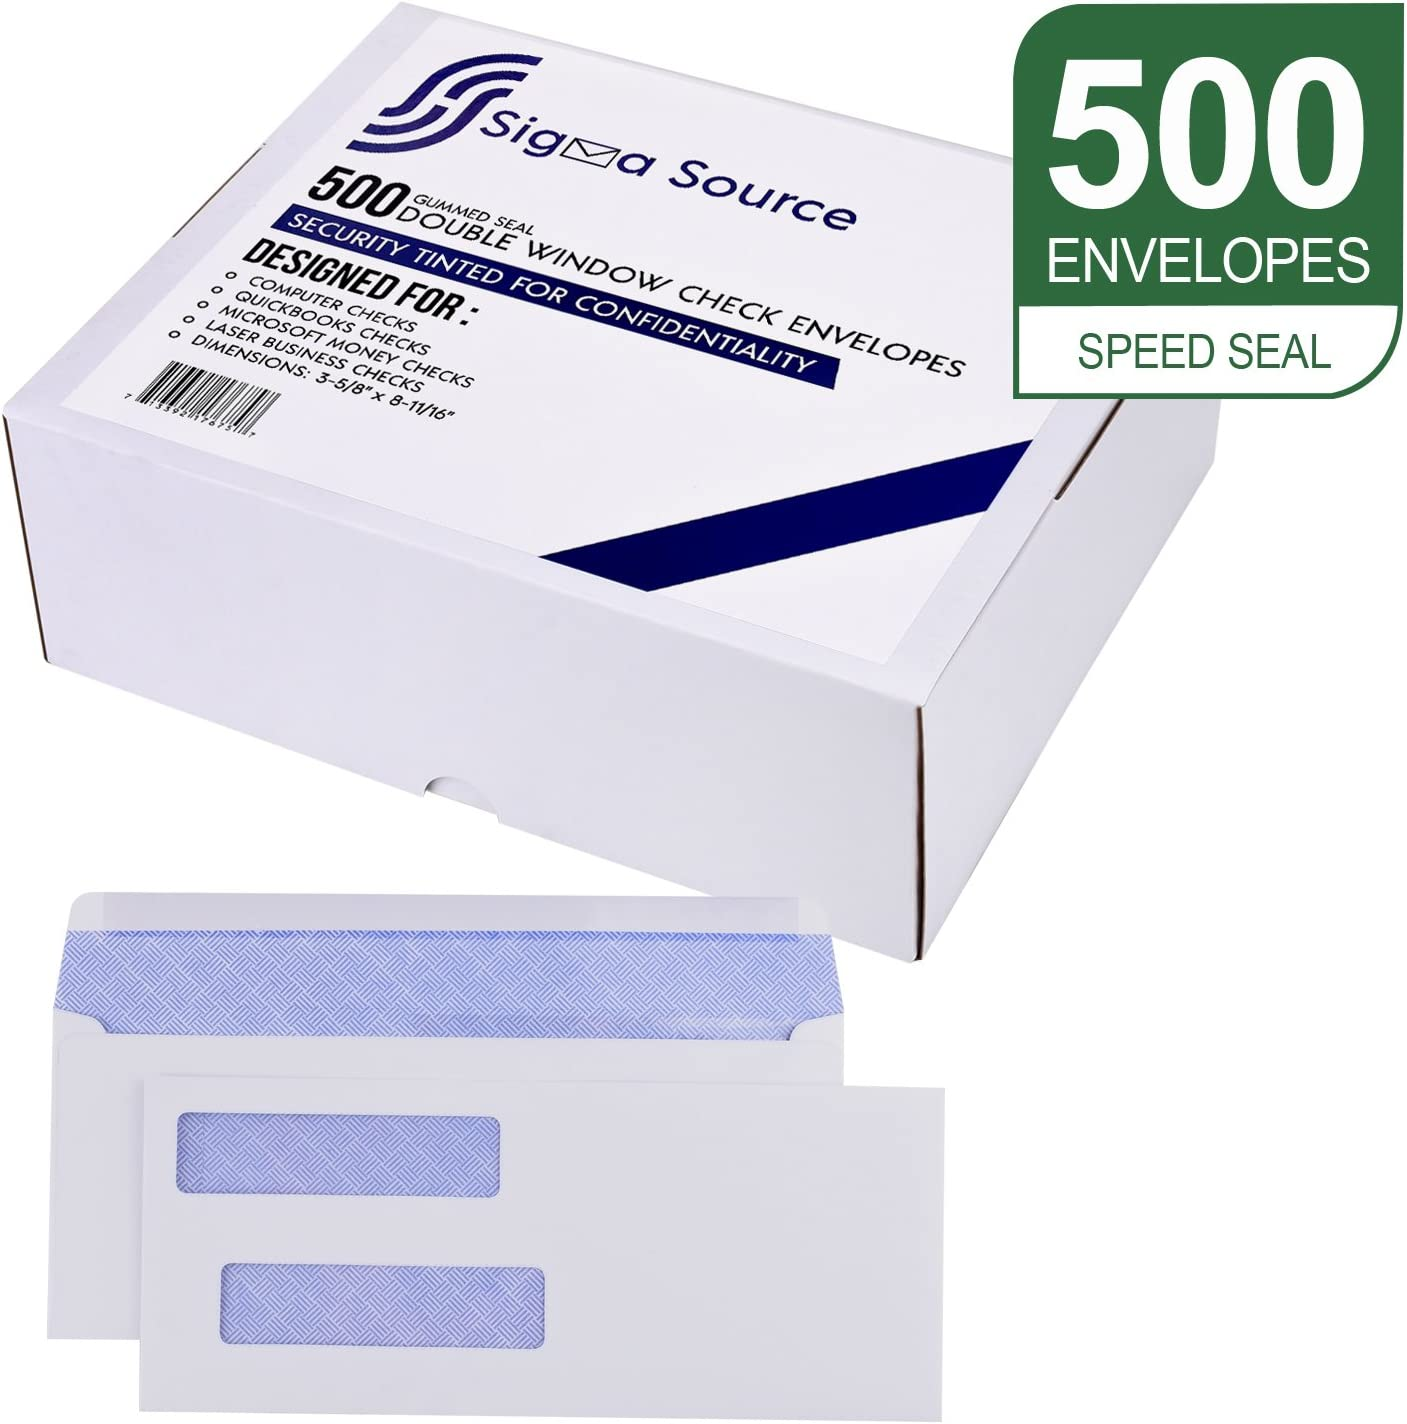 #9 Ready-Seal Double Window Security Check Envelopes Box of 100 Compatible with QuickBooks Software and Other Checks